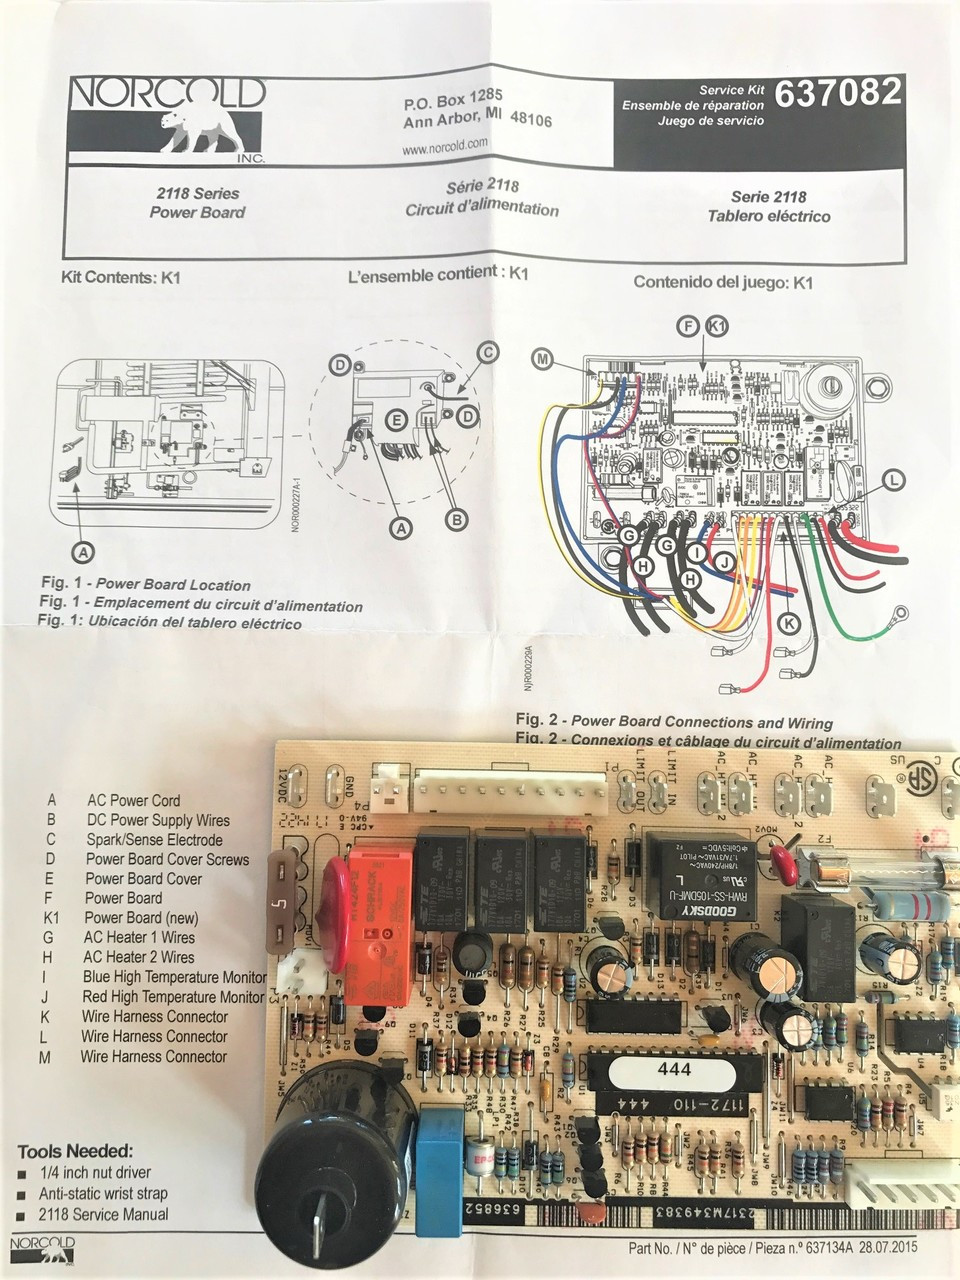 Norcold 618185 Power Board Cover